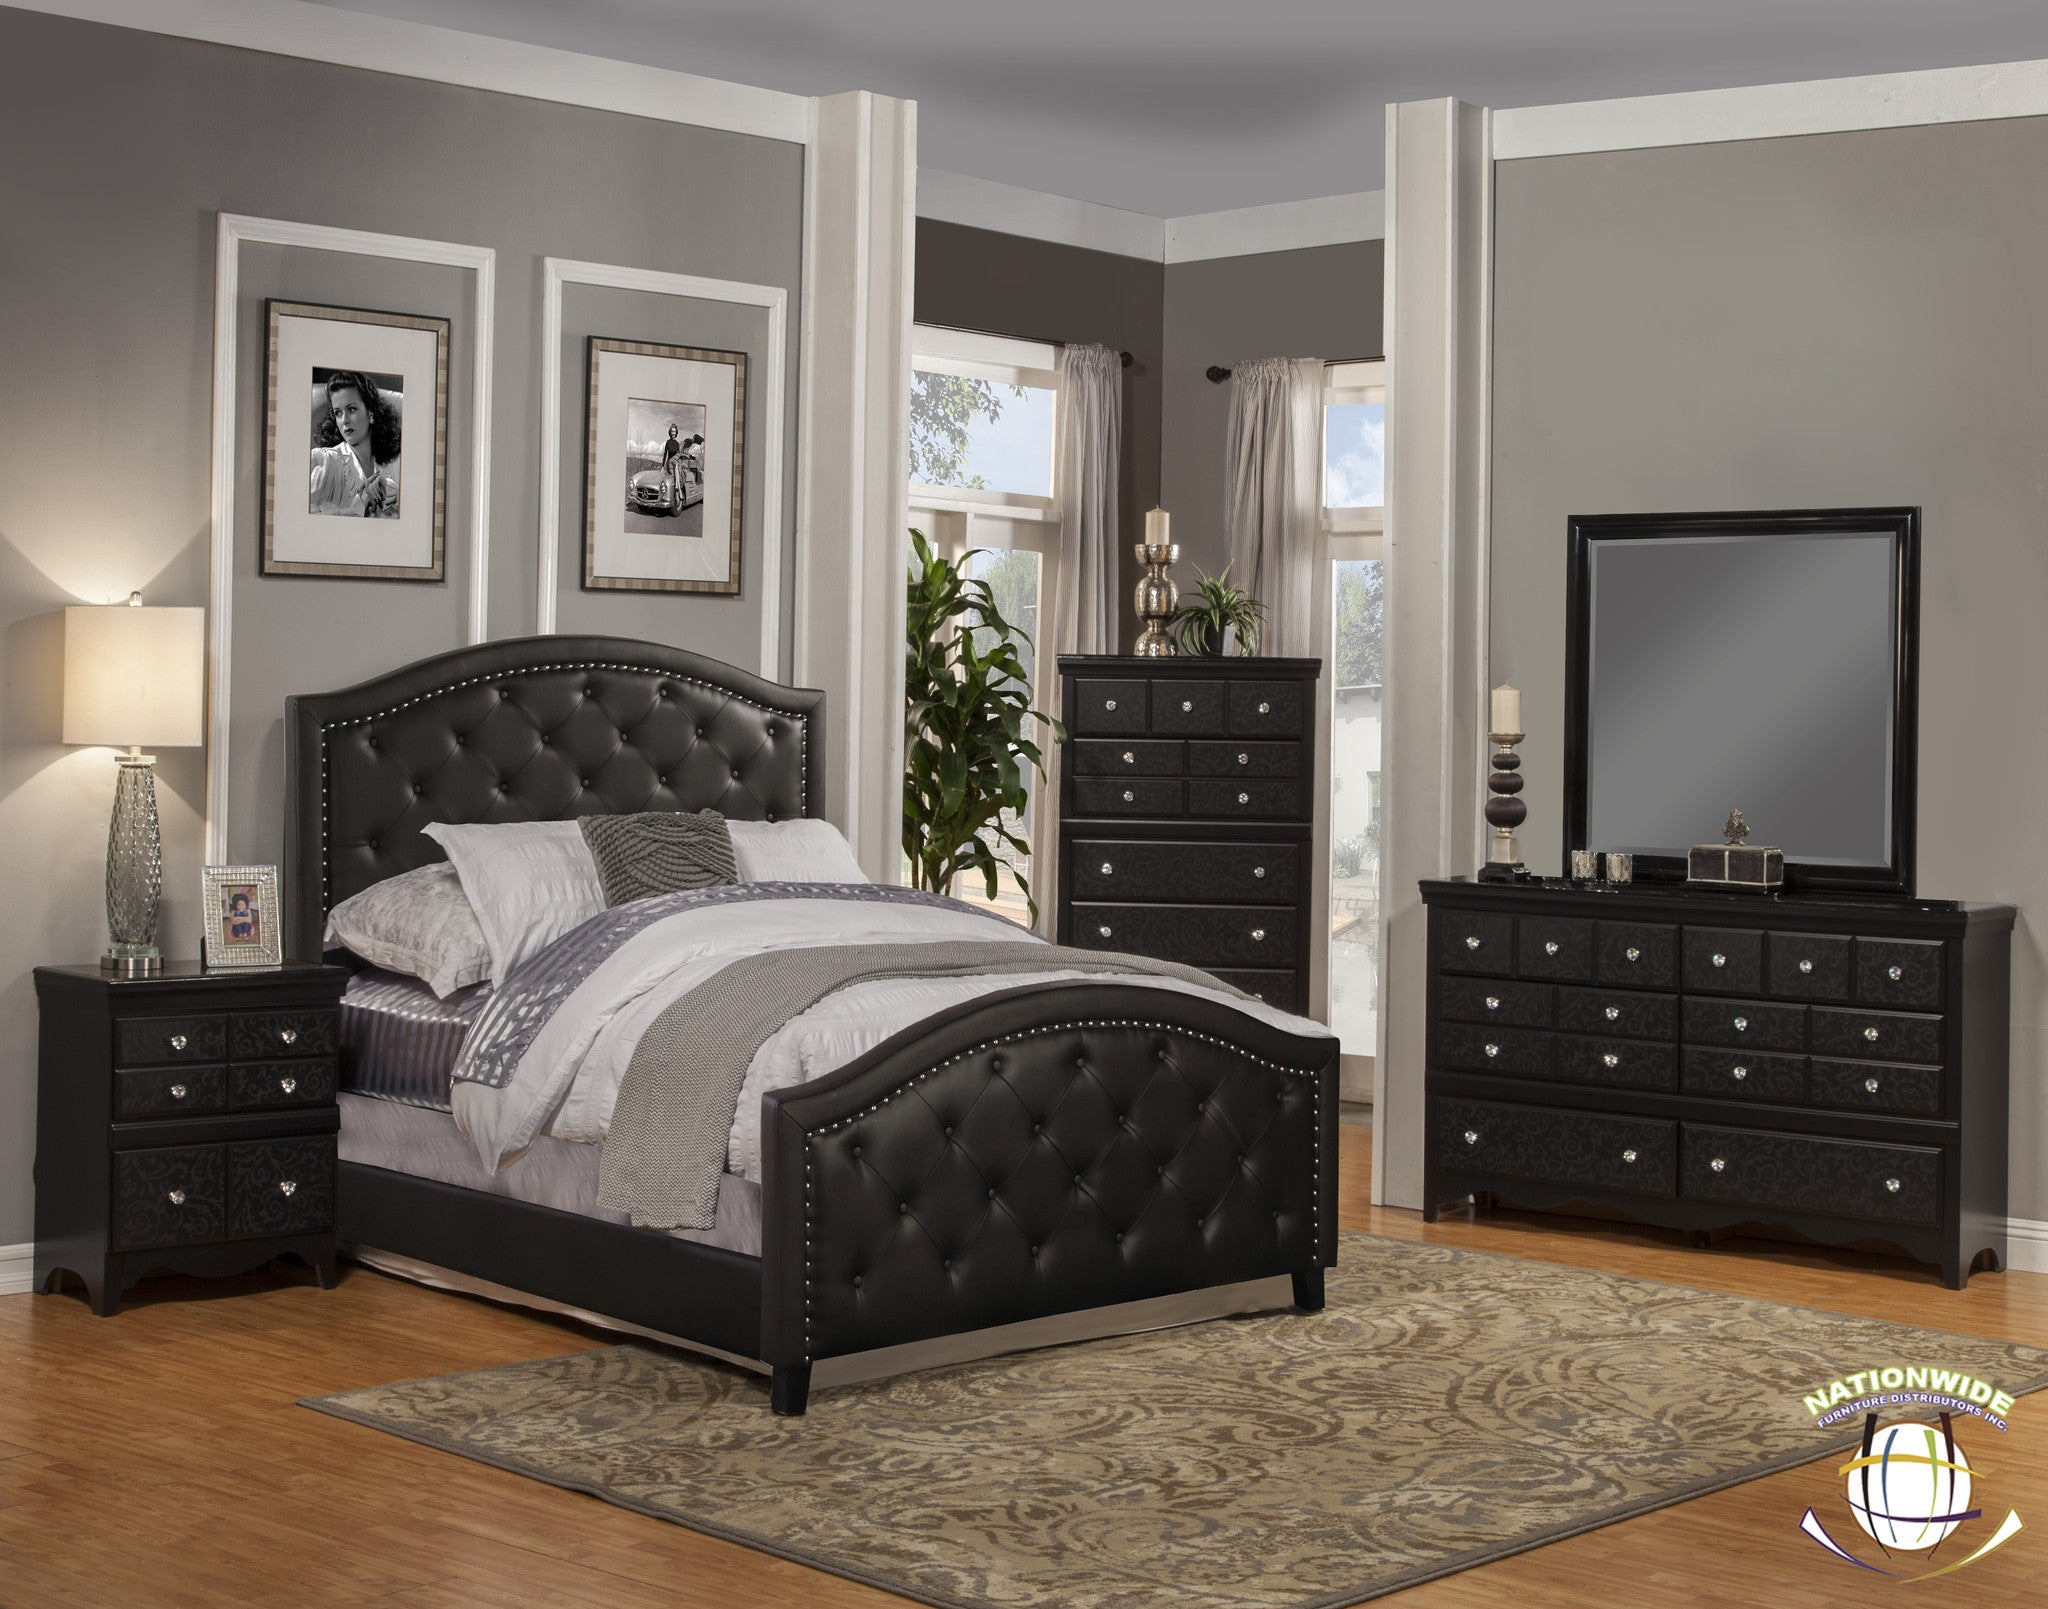 Andre Collection Bed by HD Furniture - HD Furniture